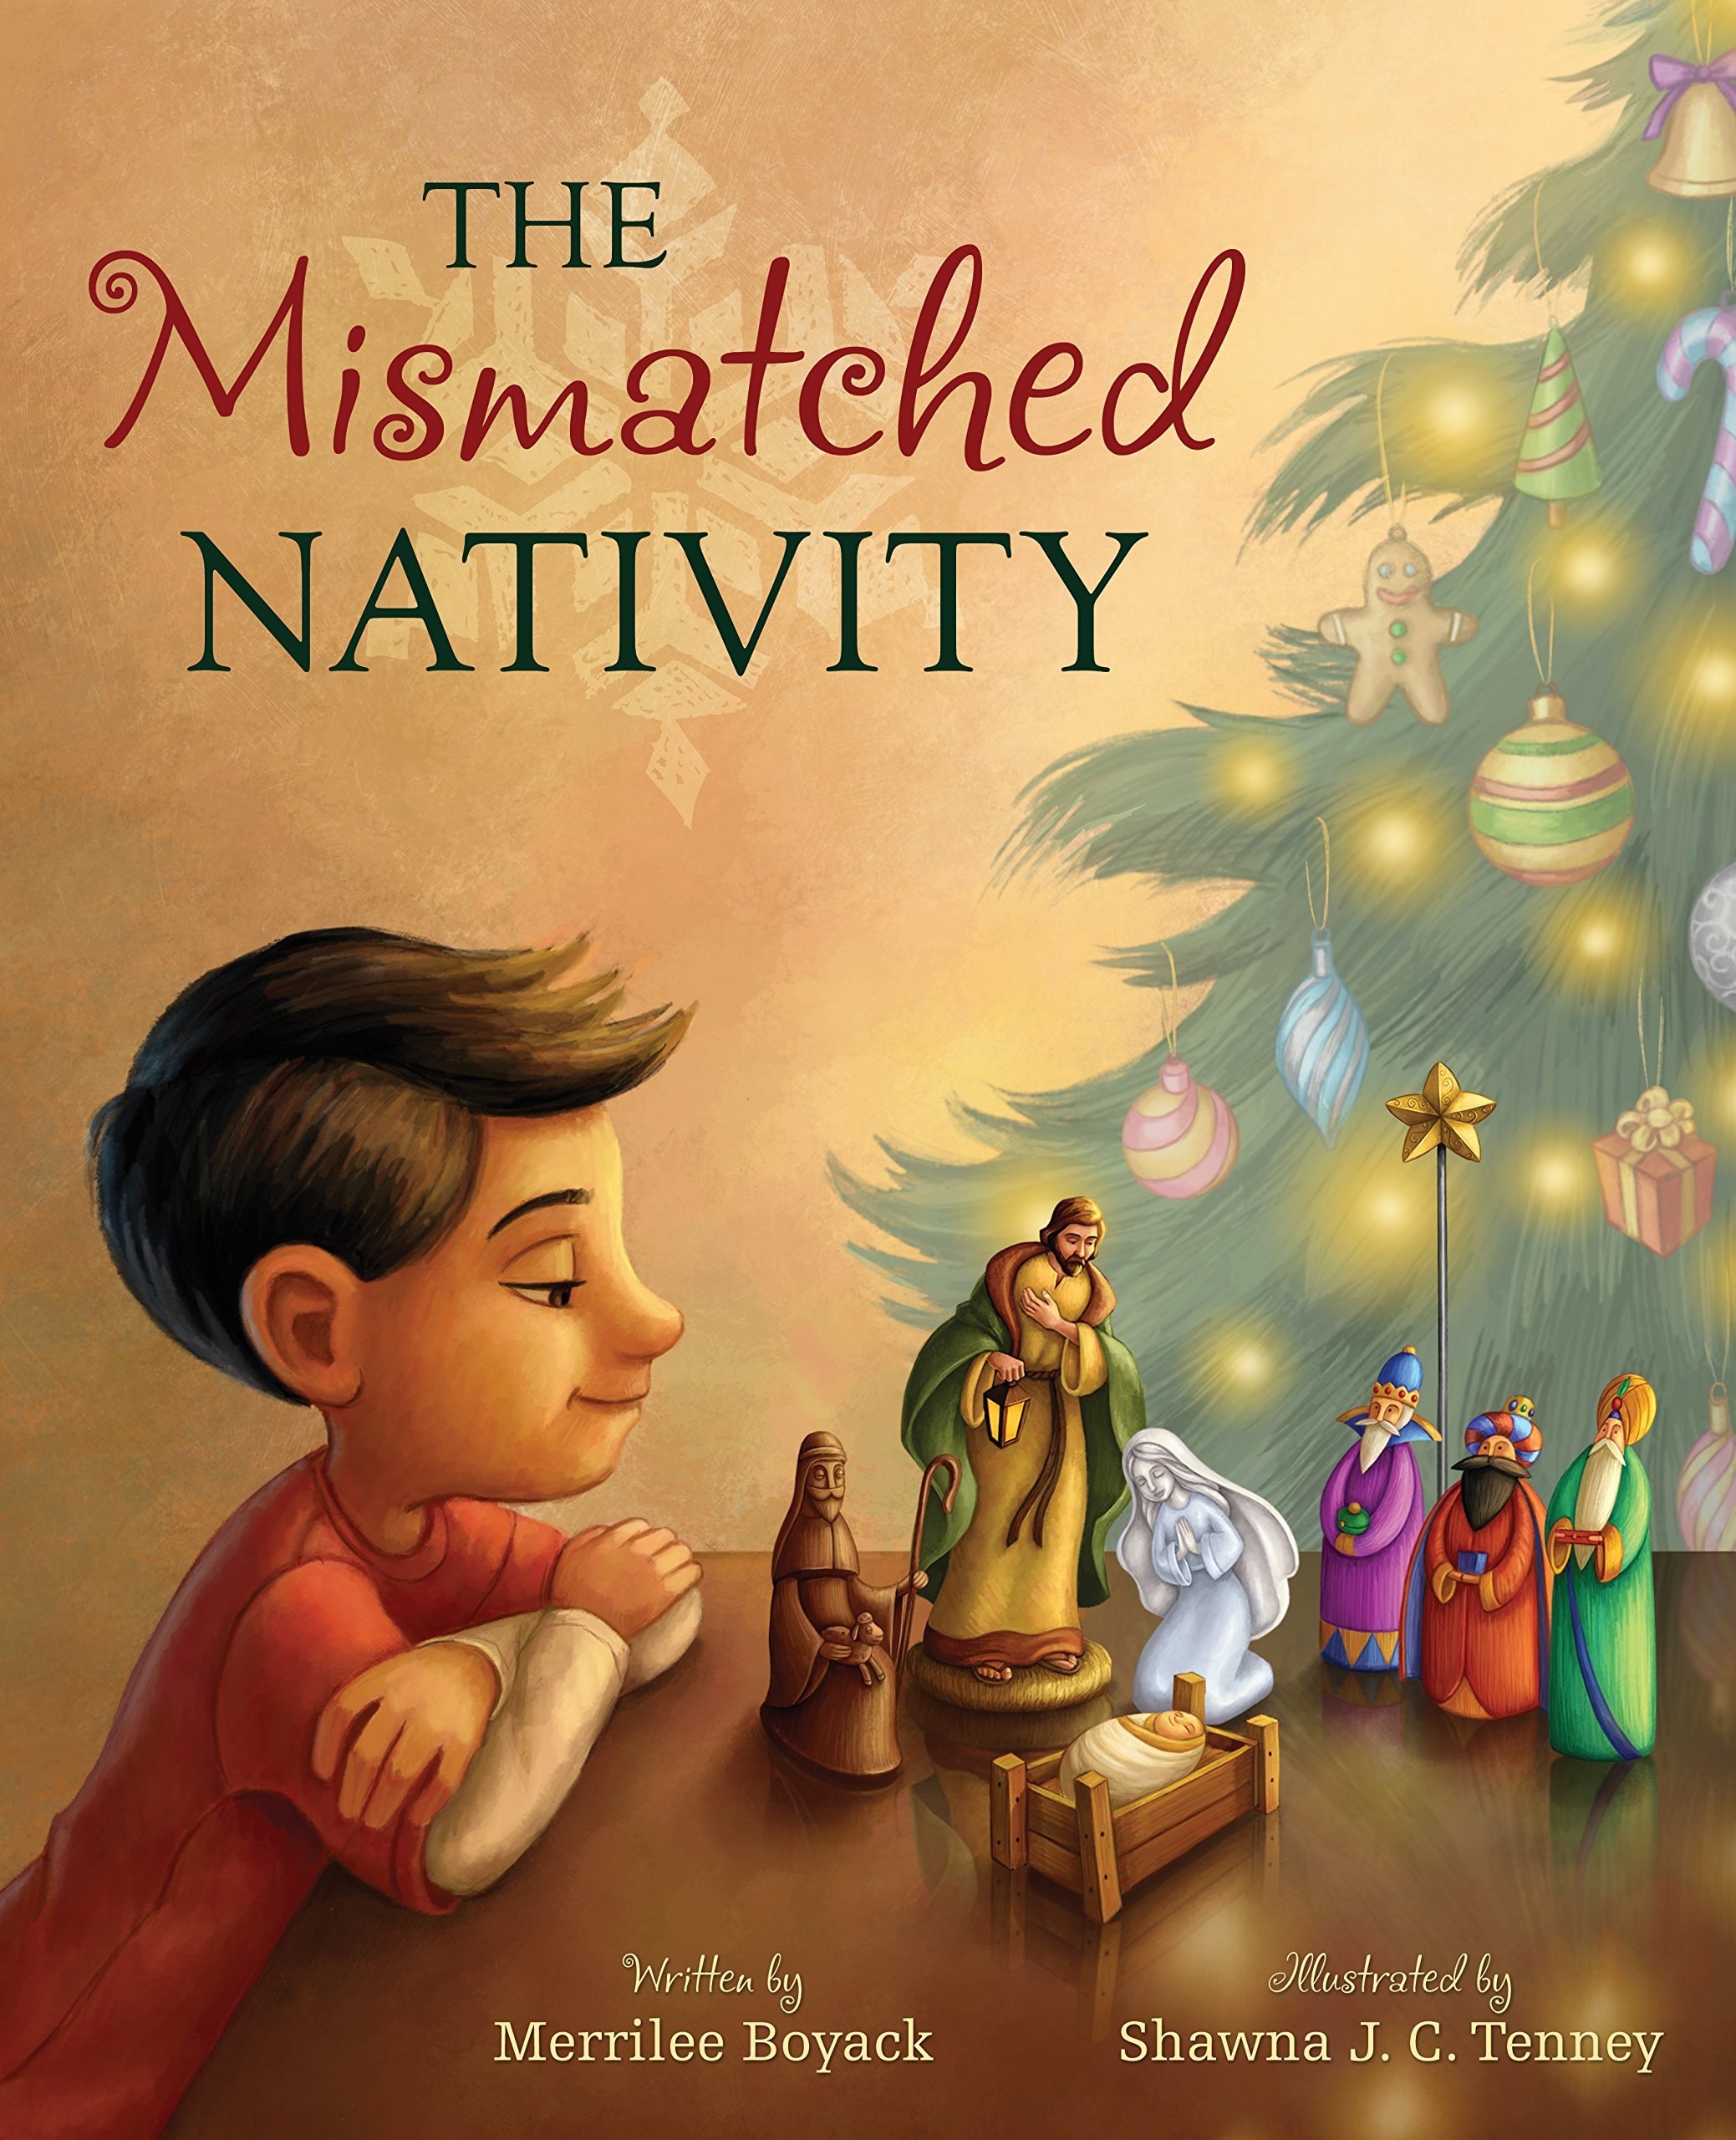 The Mismatched Nativity, Boyack, Merrilee (Author), Shawna J. C. Tenney (Illustrator)